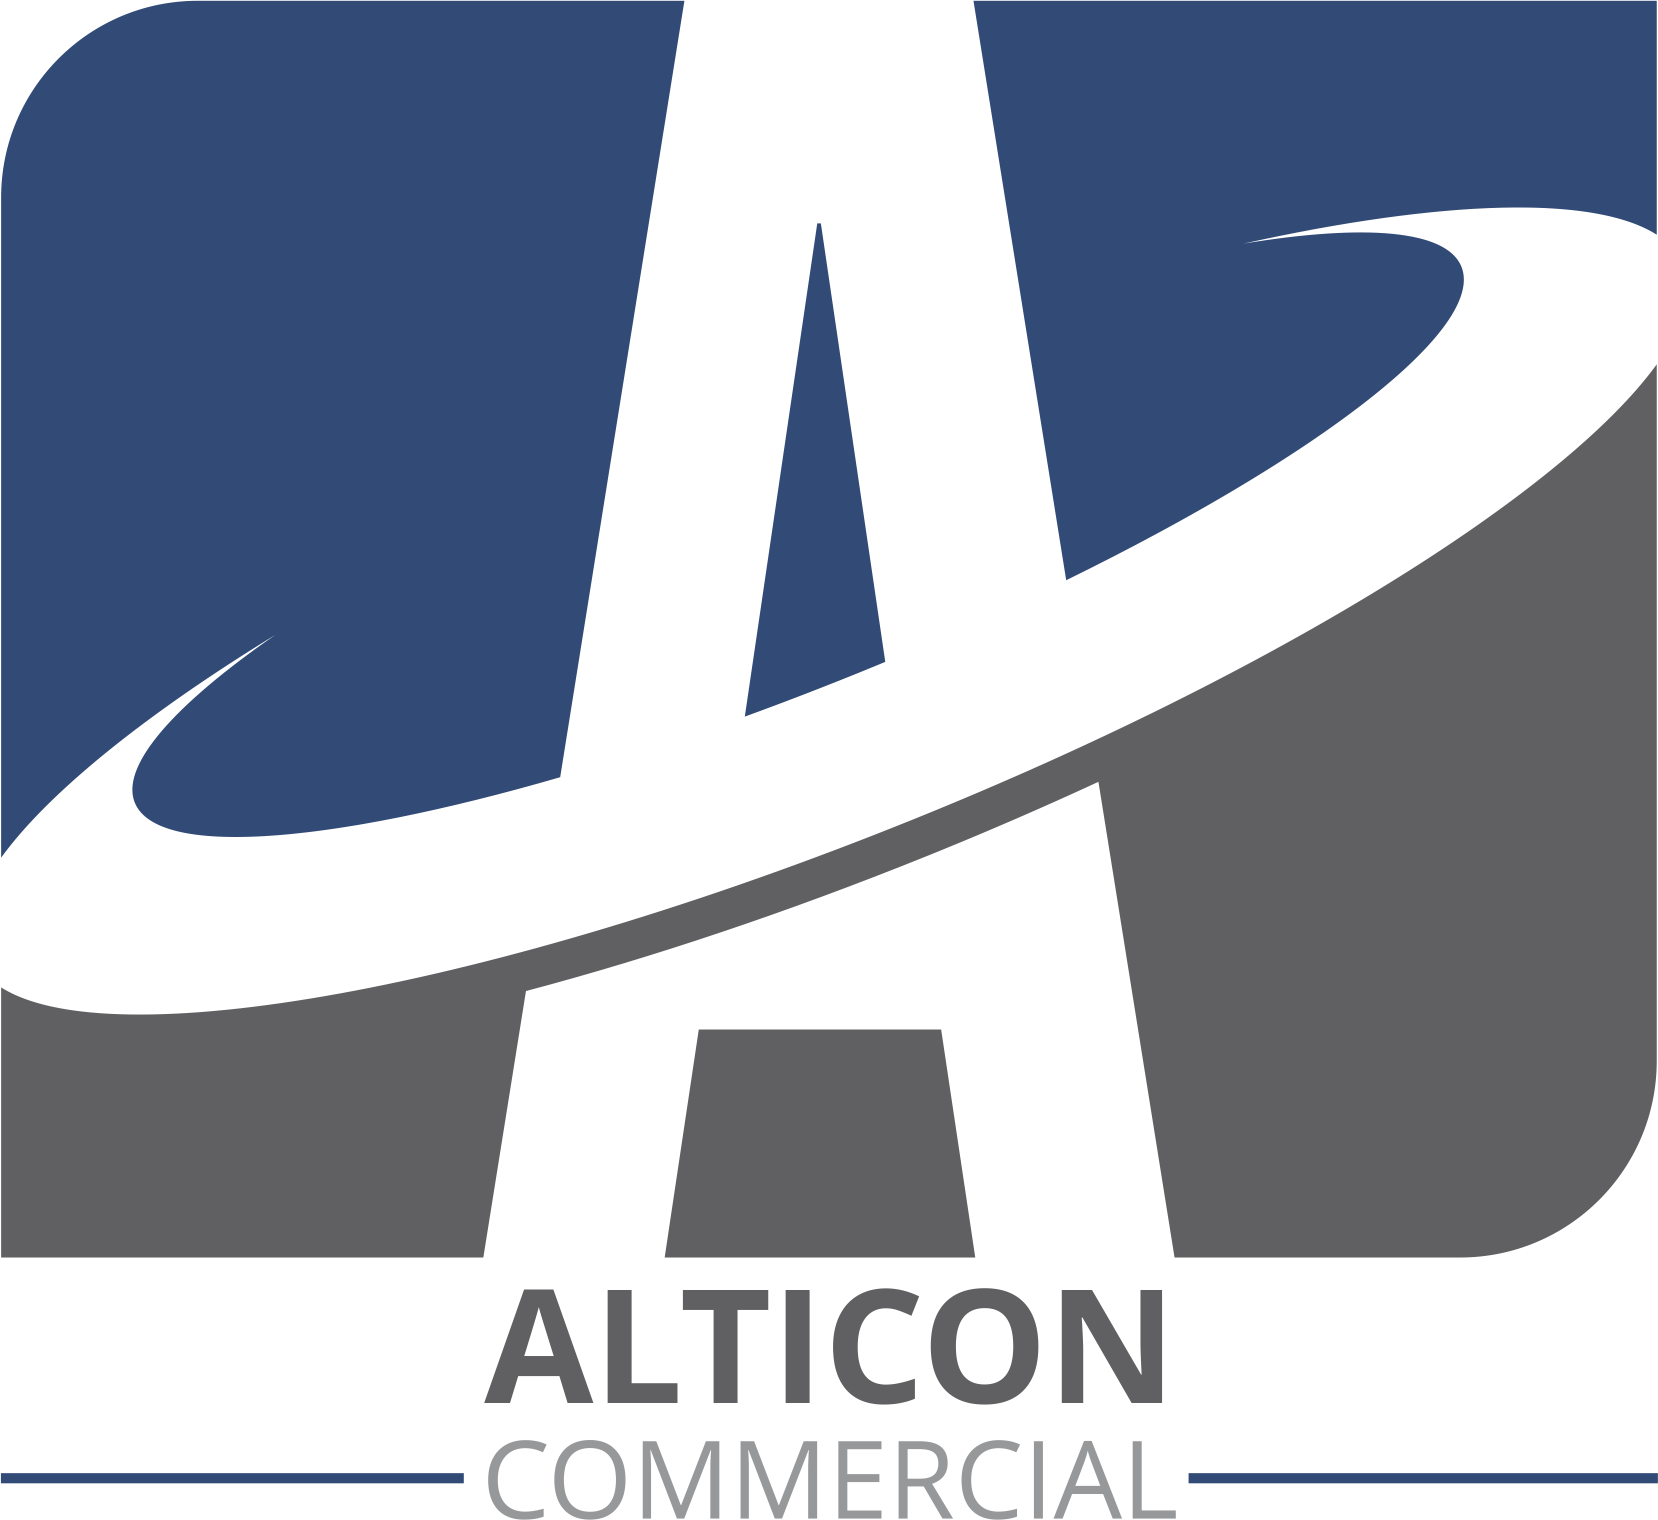 Alticon's Development Management division is a Professional Property Development Design and Management Consulting Department.